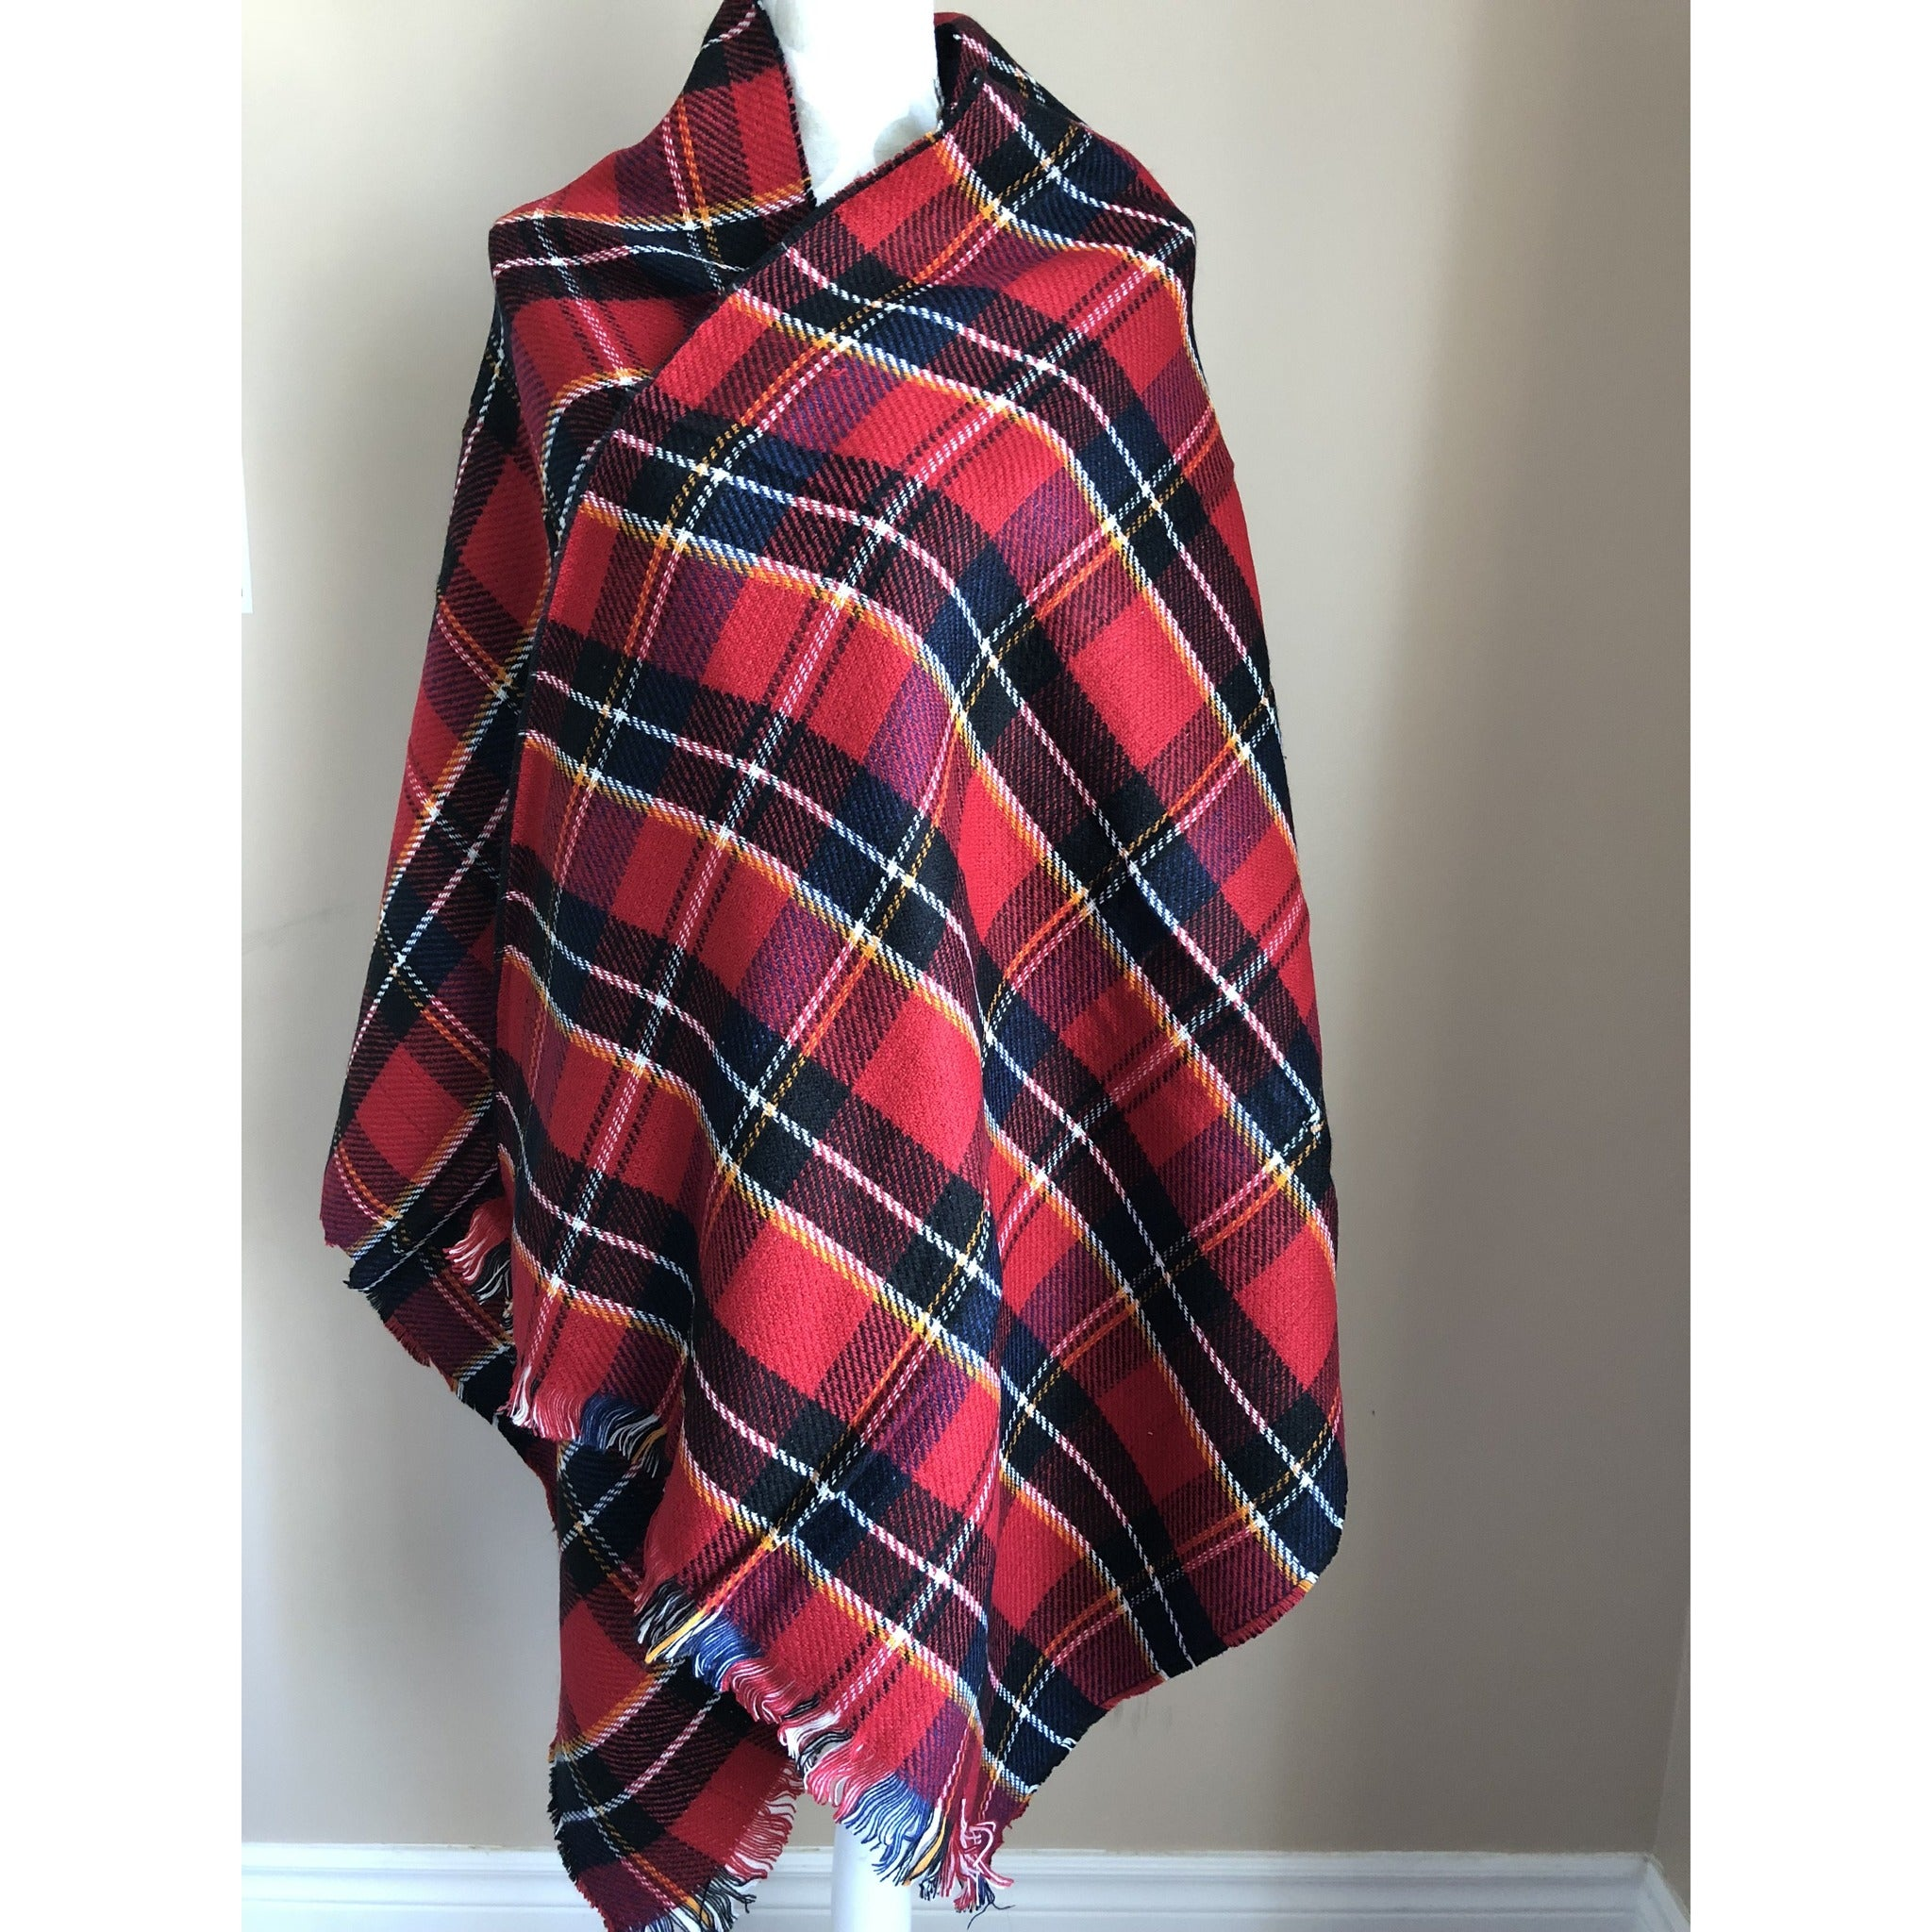 Fashion Women Rectangle Blanket Wrap - Red and Black